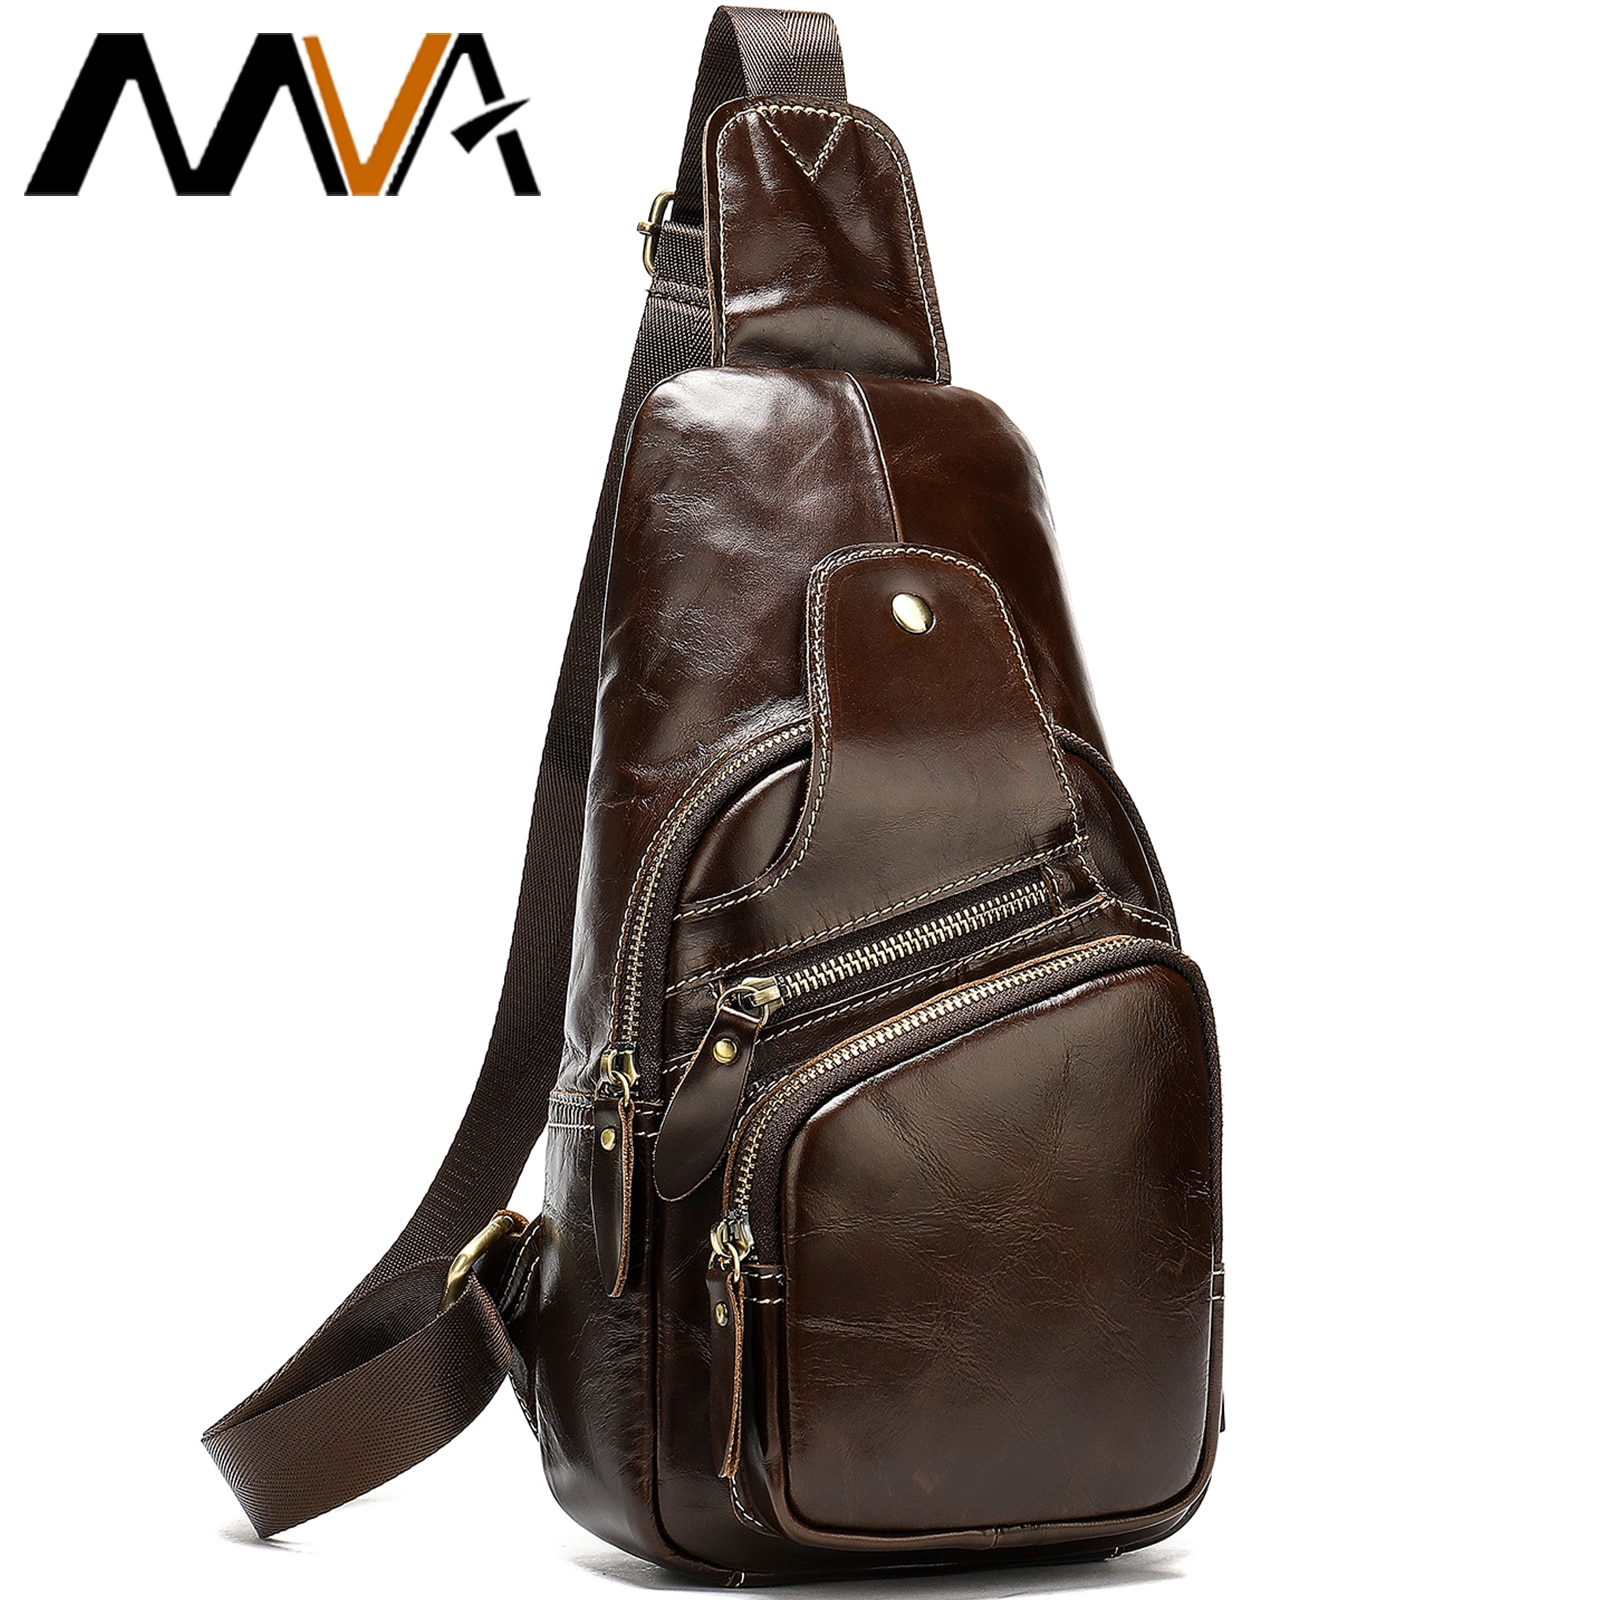 MVA Breast Package Men's Sling Bags USB Charging Men Bags Shoulder Crossbody Chest Pack Anti Theft Fashion Chest Bags For Male